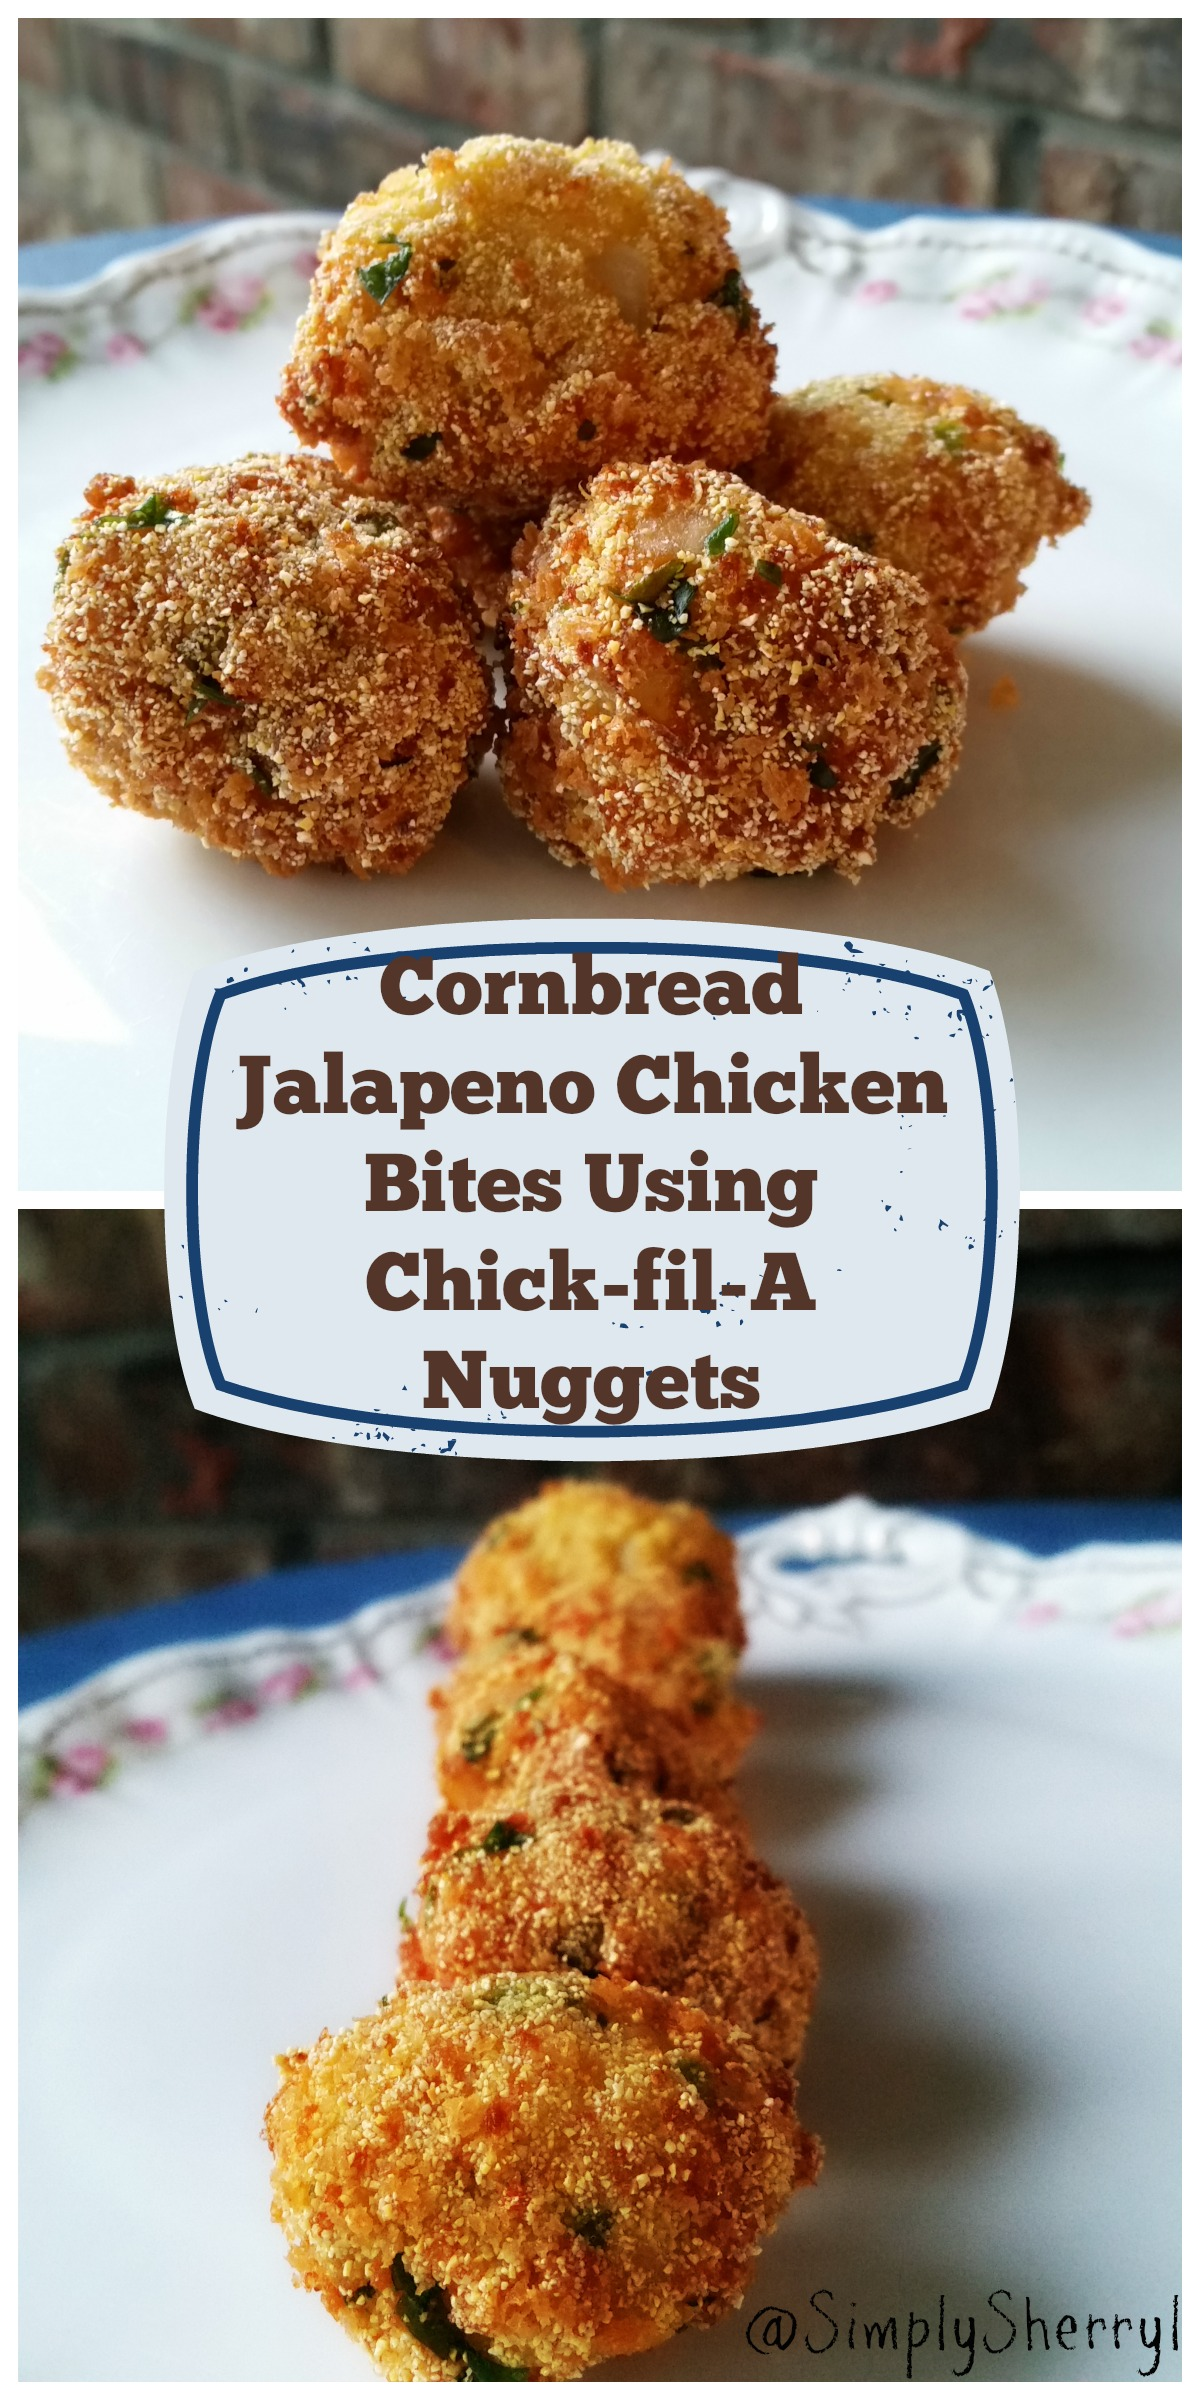 Cornbread Jalapeno Chicken Bites Using Chick-fil-A Nuggets